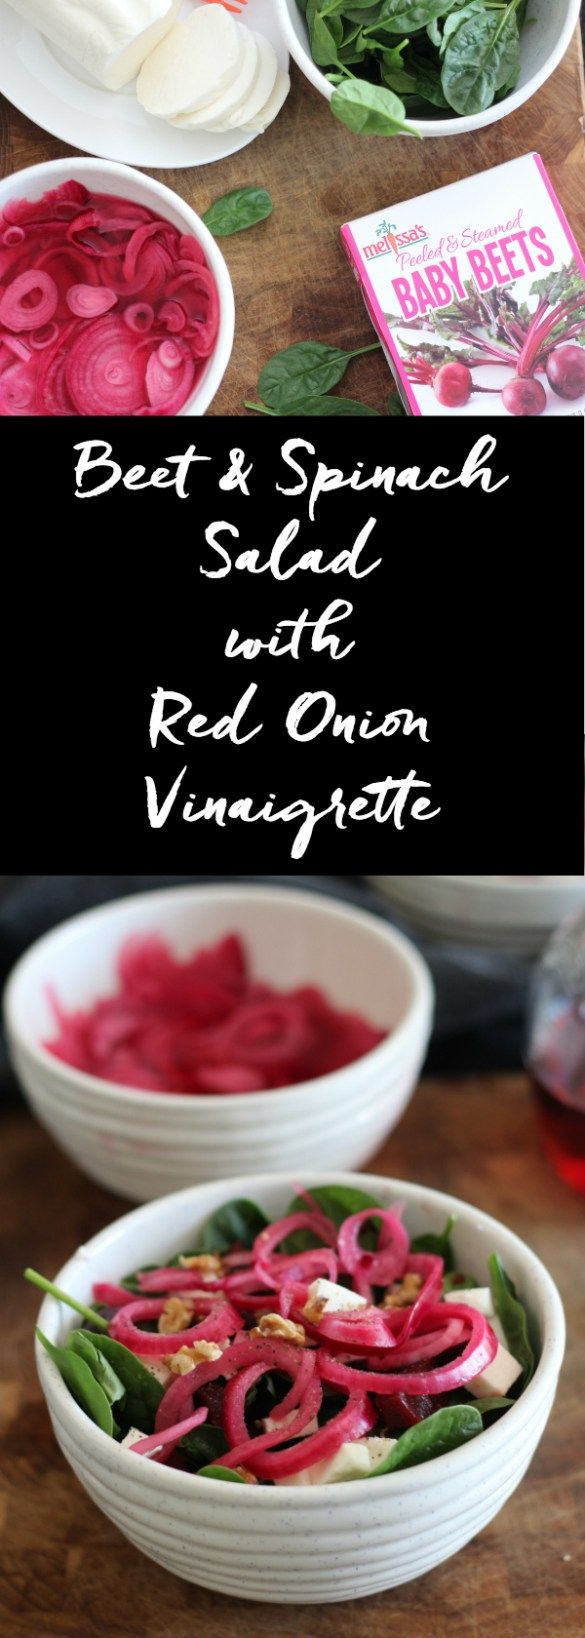 Pin By Sparkle On Sparkle Crafts Spinach Salad Recipes Eat